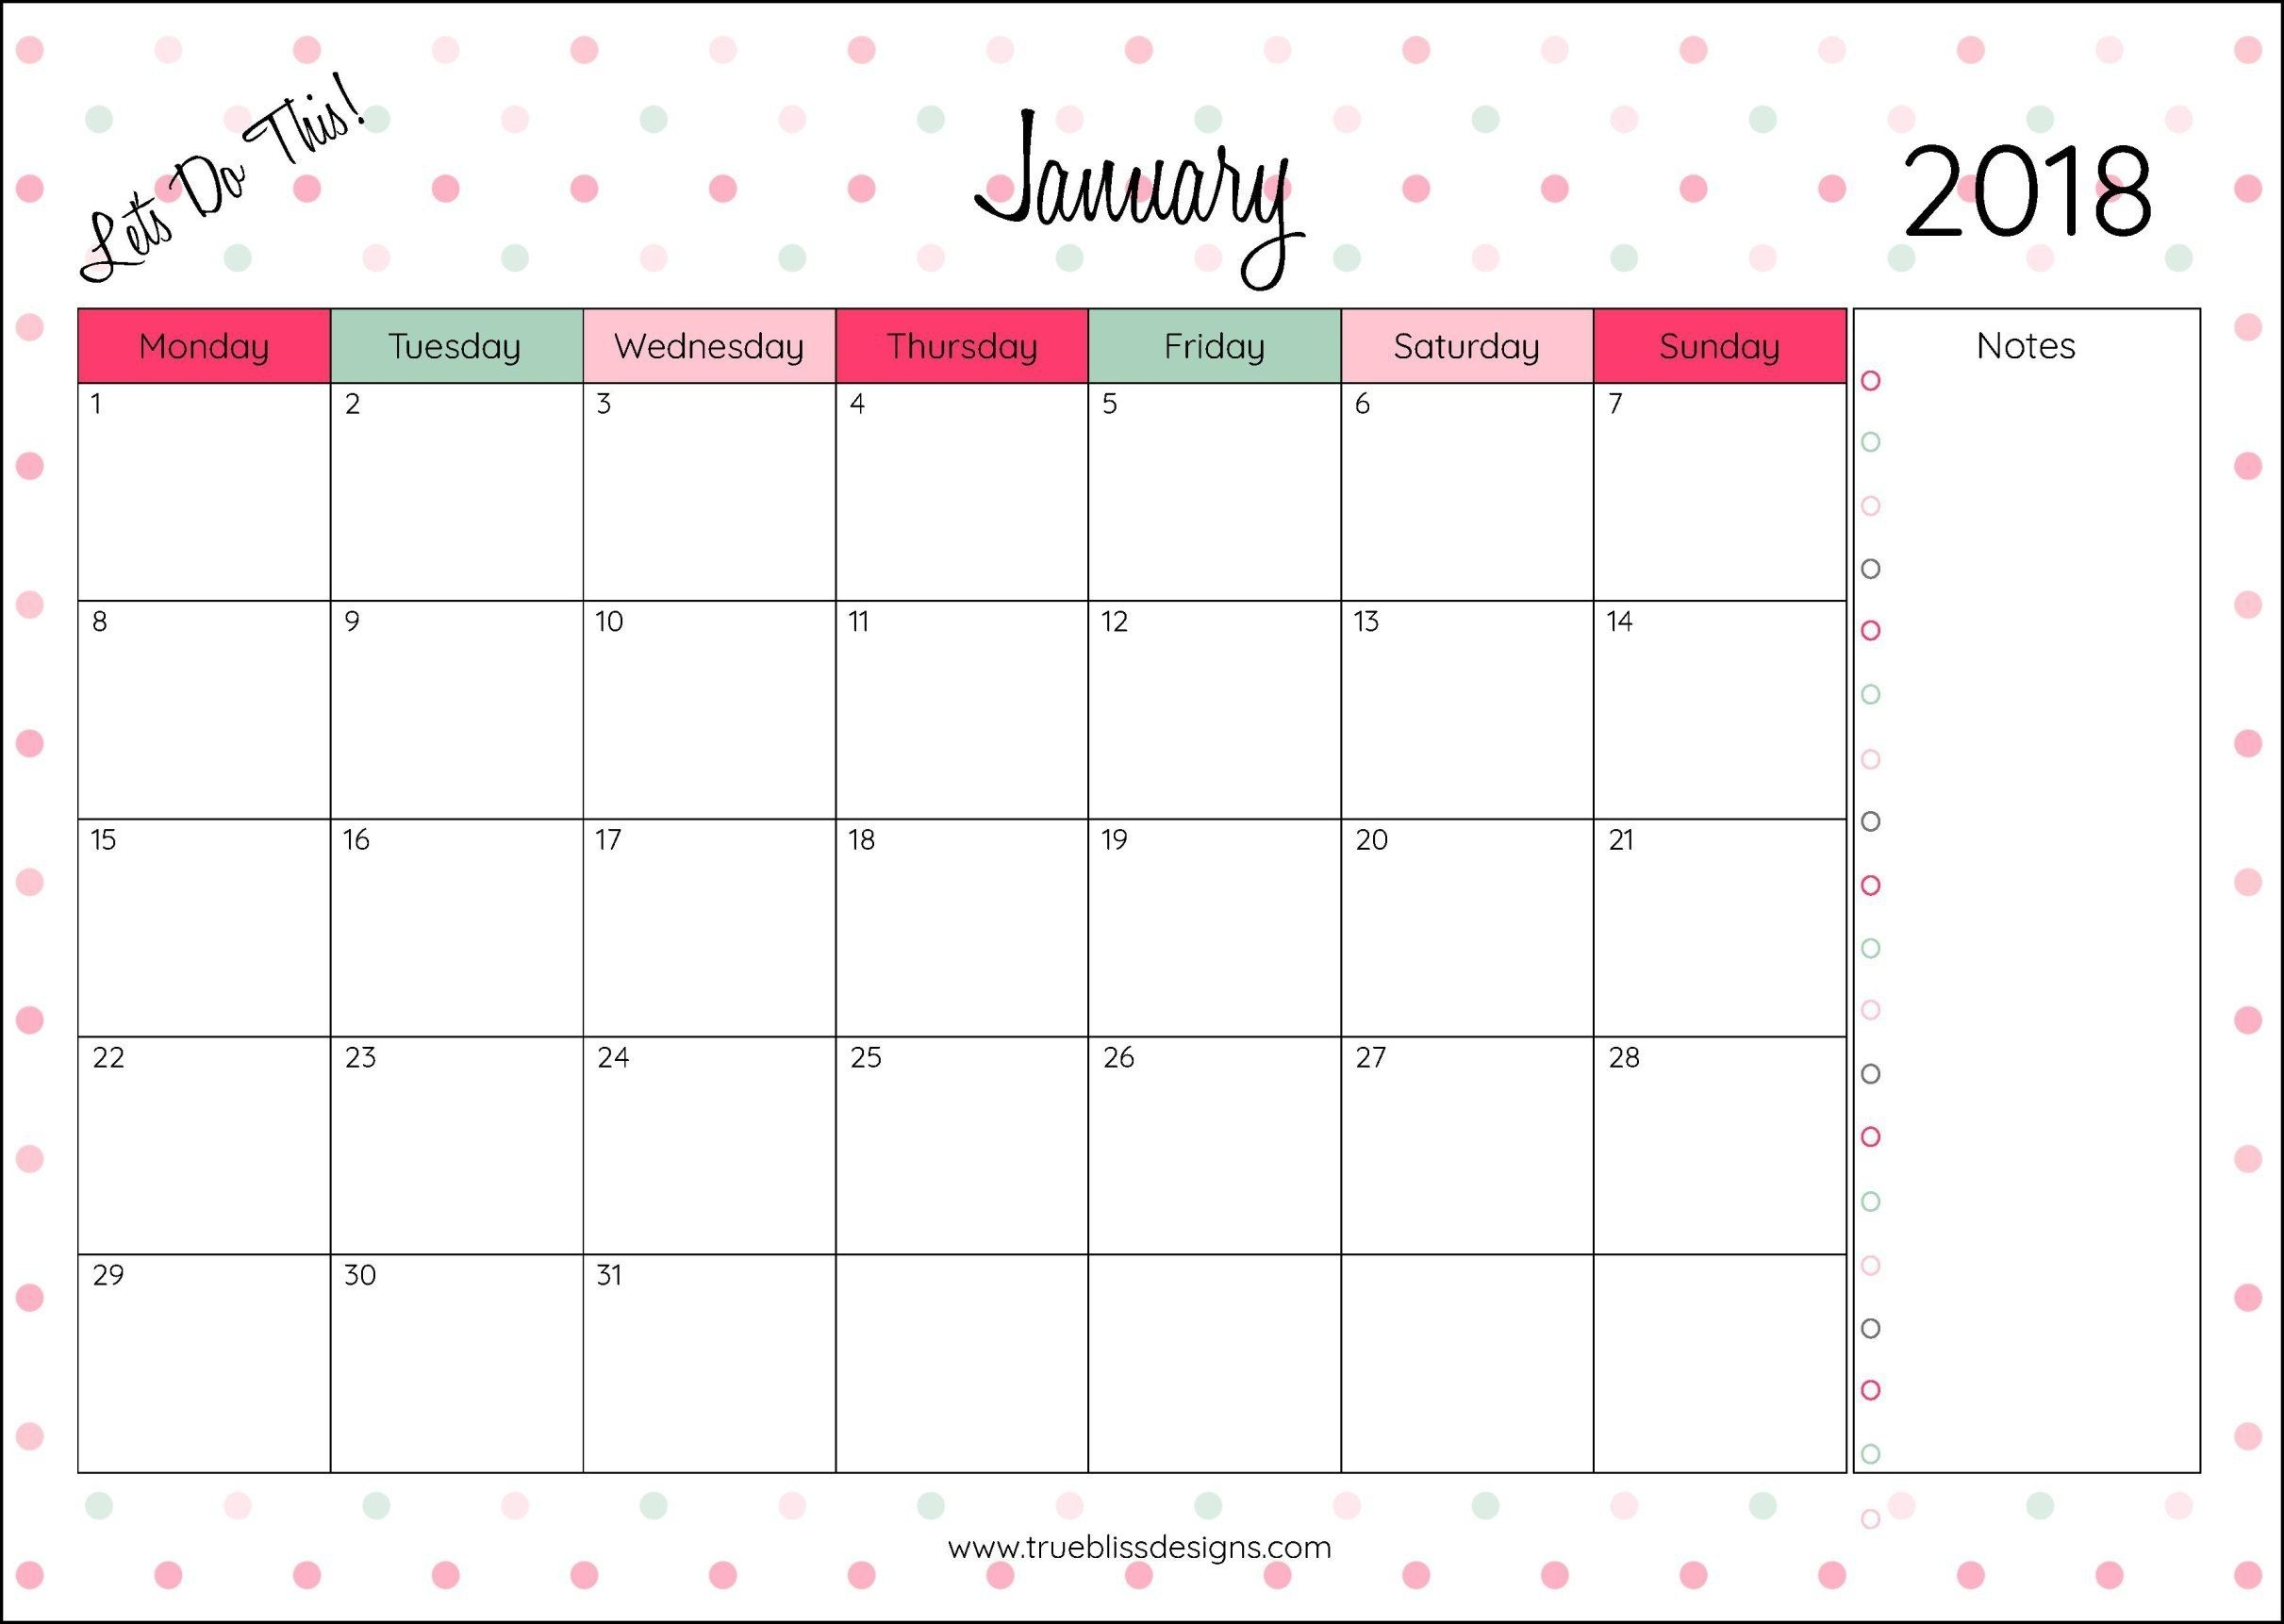 2018 Monthly Printable Calendar - Let's Do This | Planner | Monthly inside Marble Themed Blank Class Schedule Template